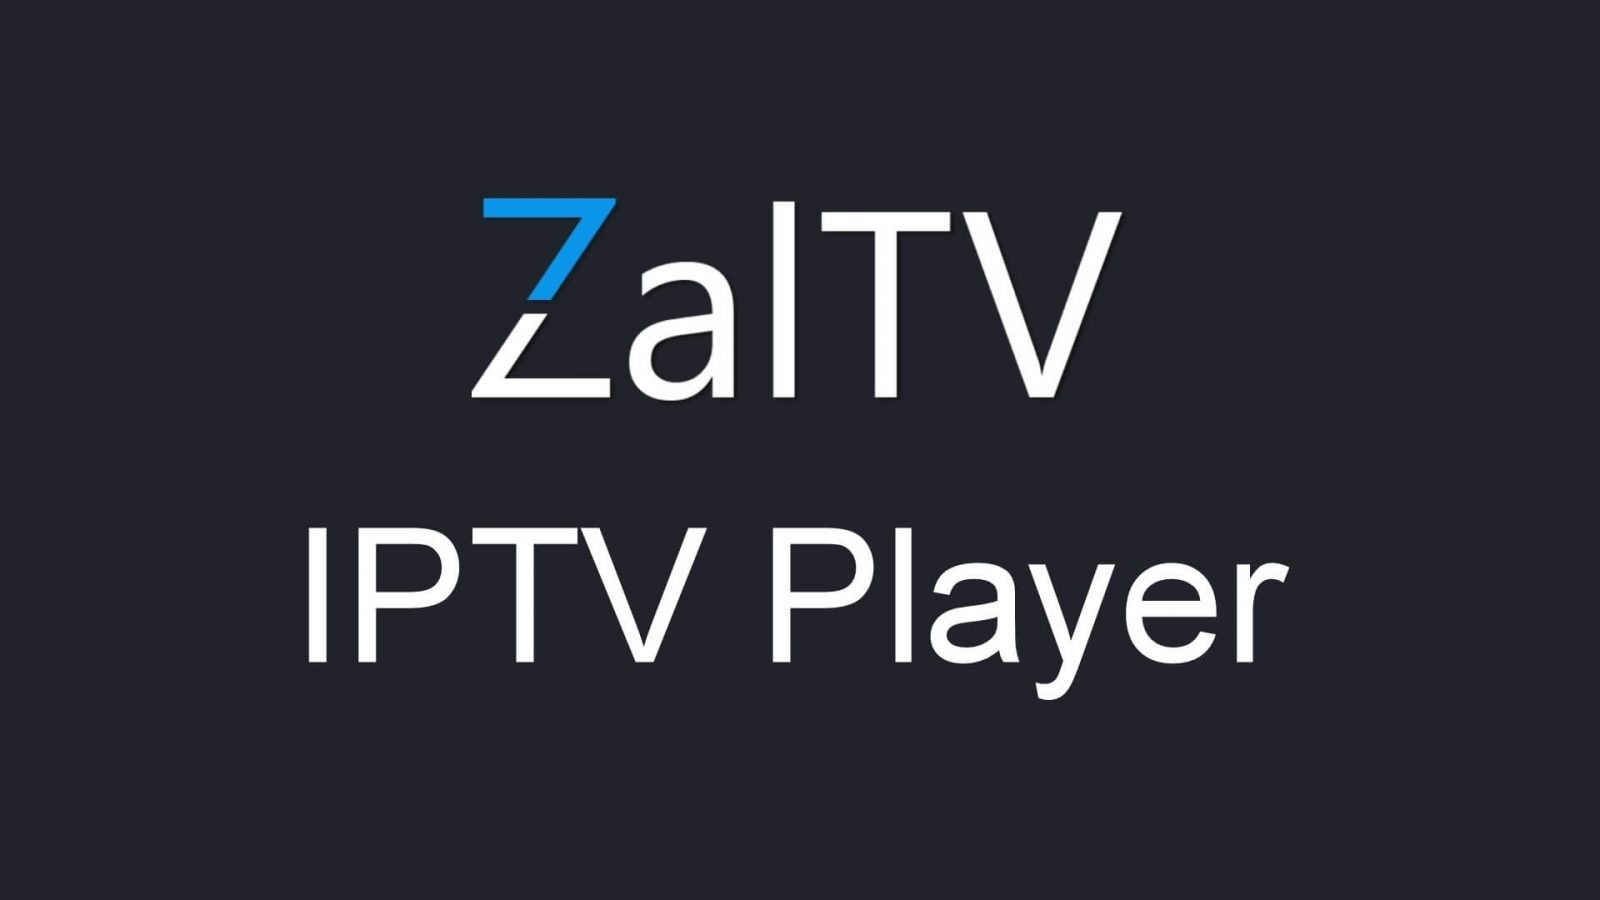 ZalTV IPTV Player